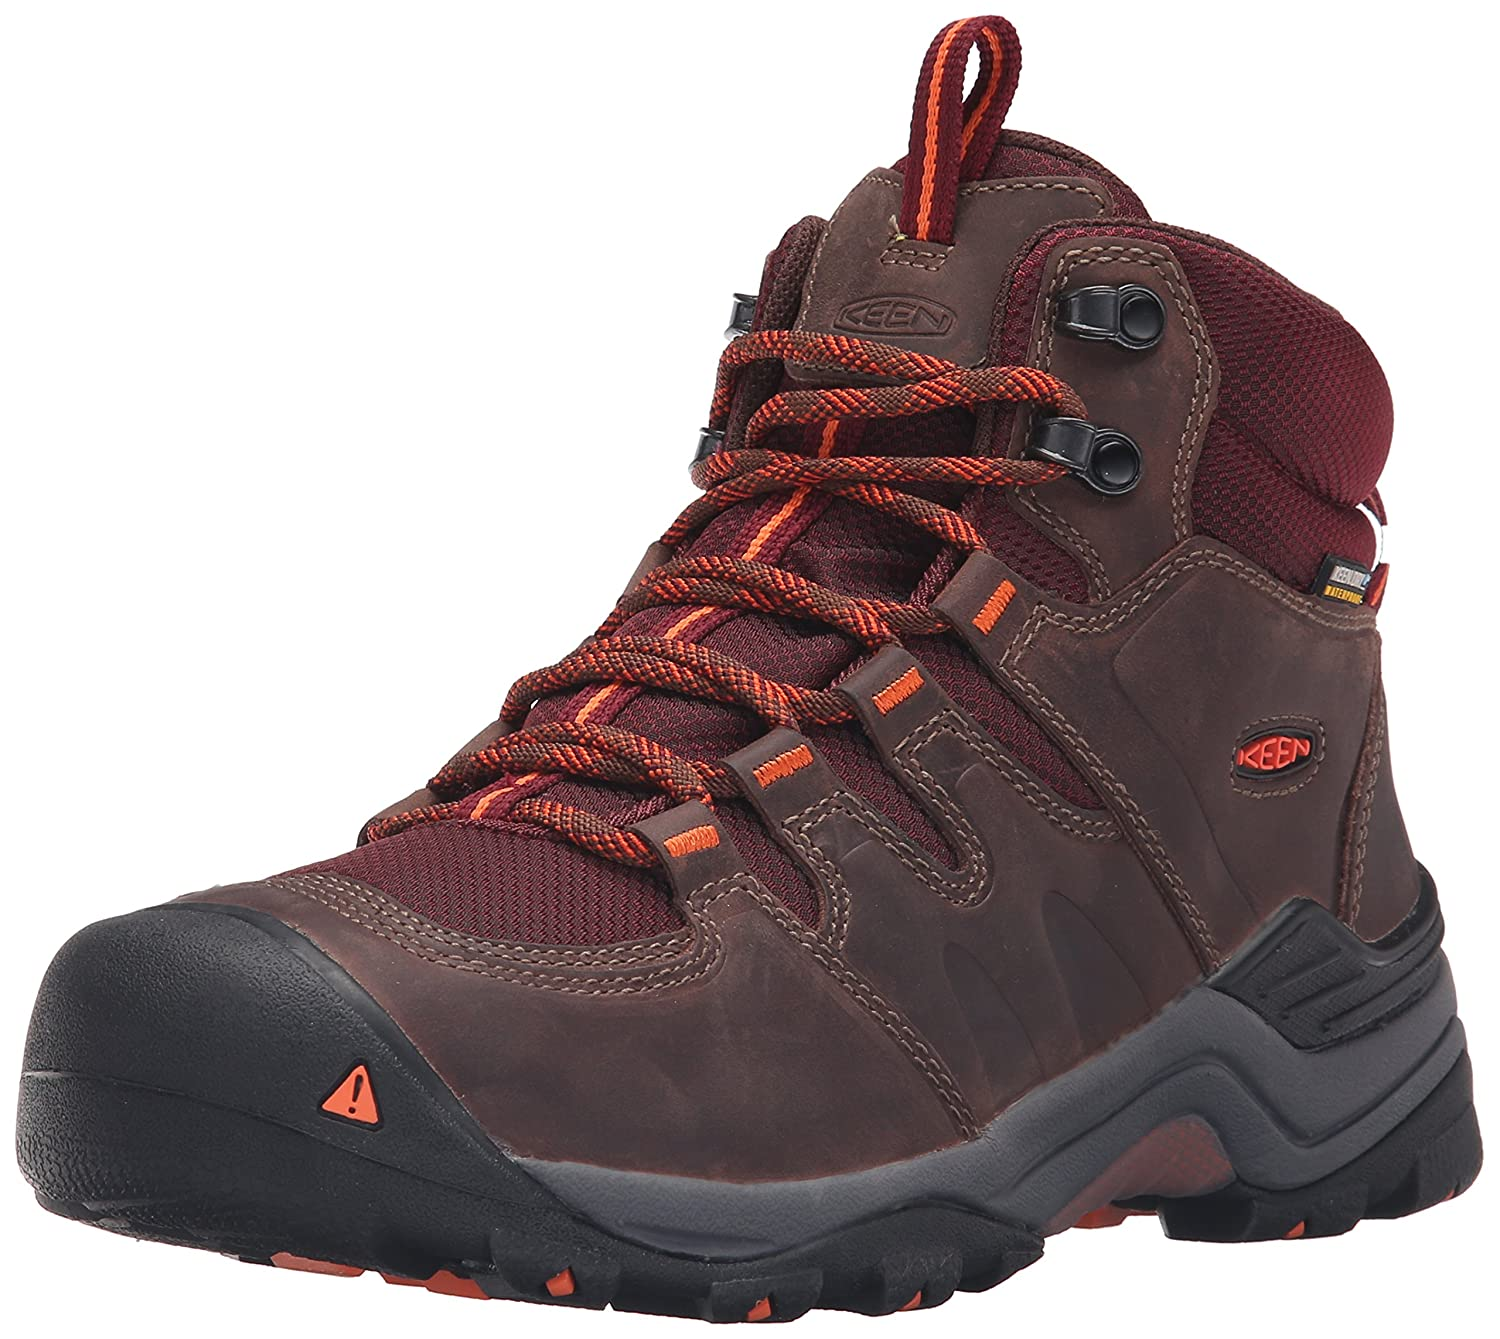 KEEN Women's Gypsum Ii Mid Wp-w Boot B019FCXK6E 9 B(M) US|Cocoa/Tiger Lilly